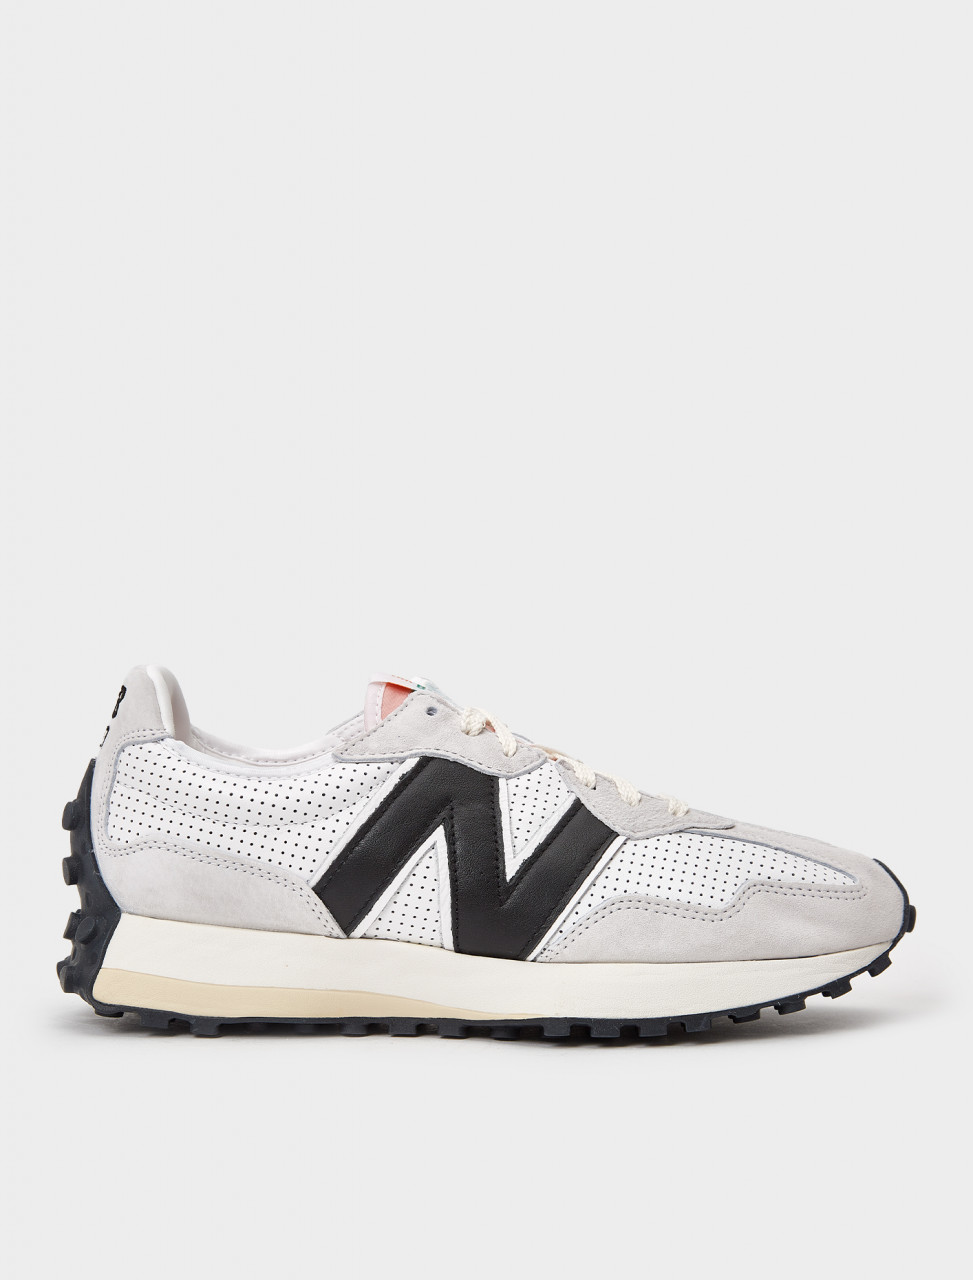 832841-60 NEW BALANCE 327 CASABLANCA WHITE GREY BLACK